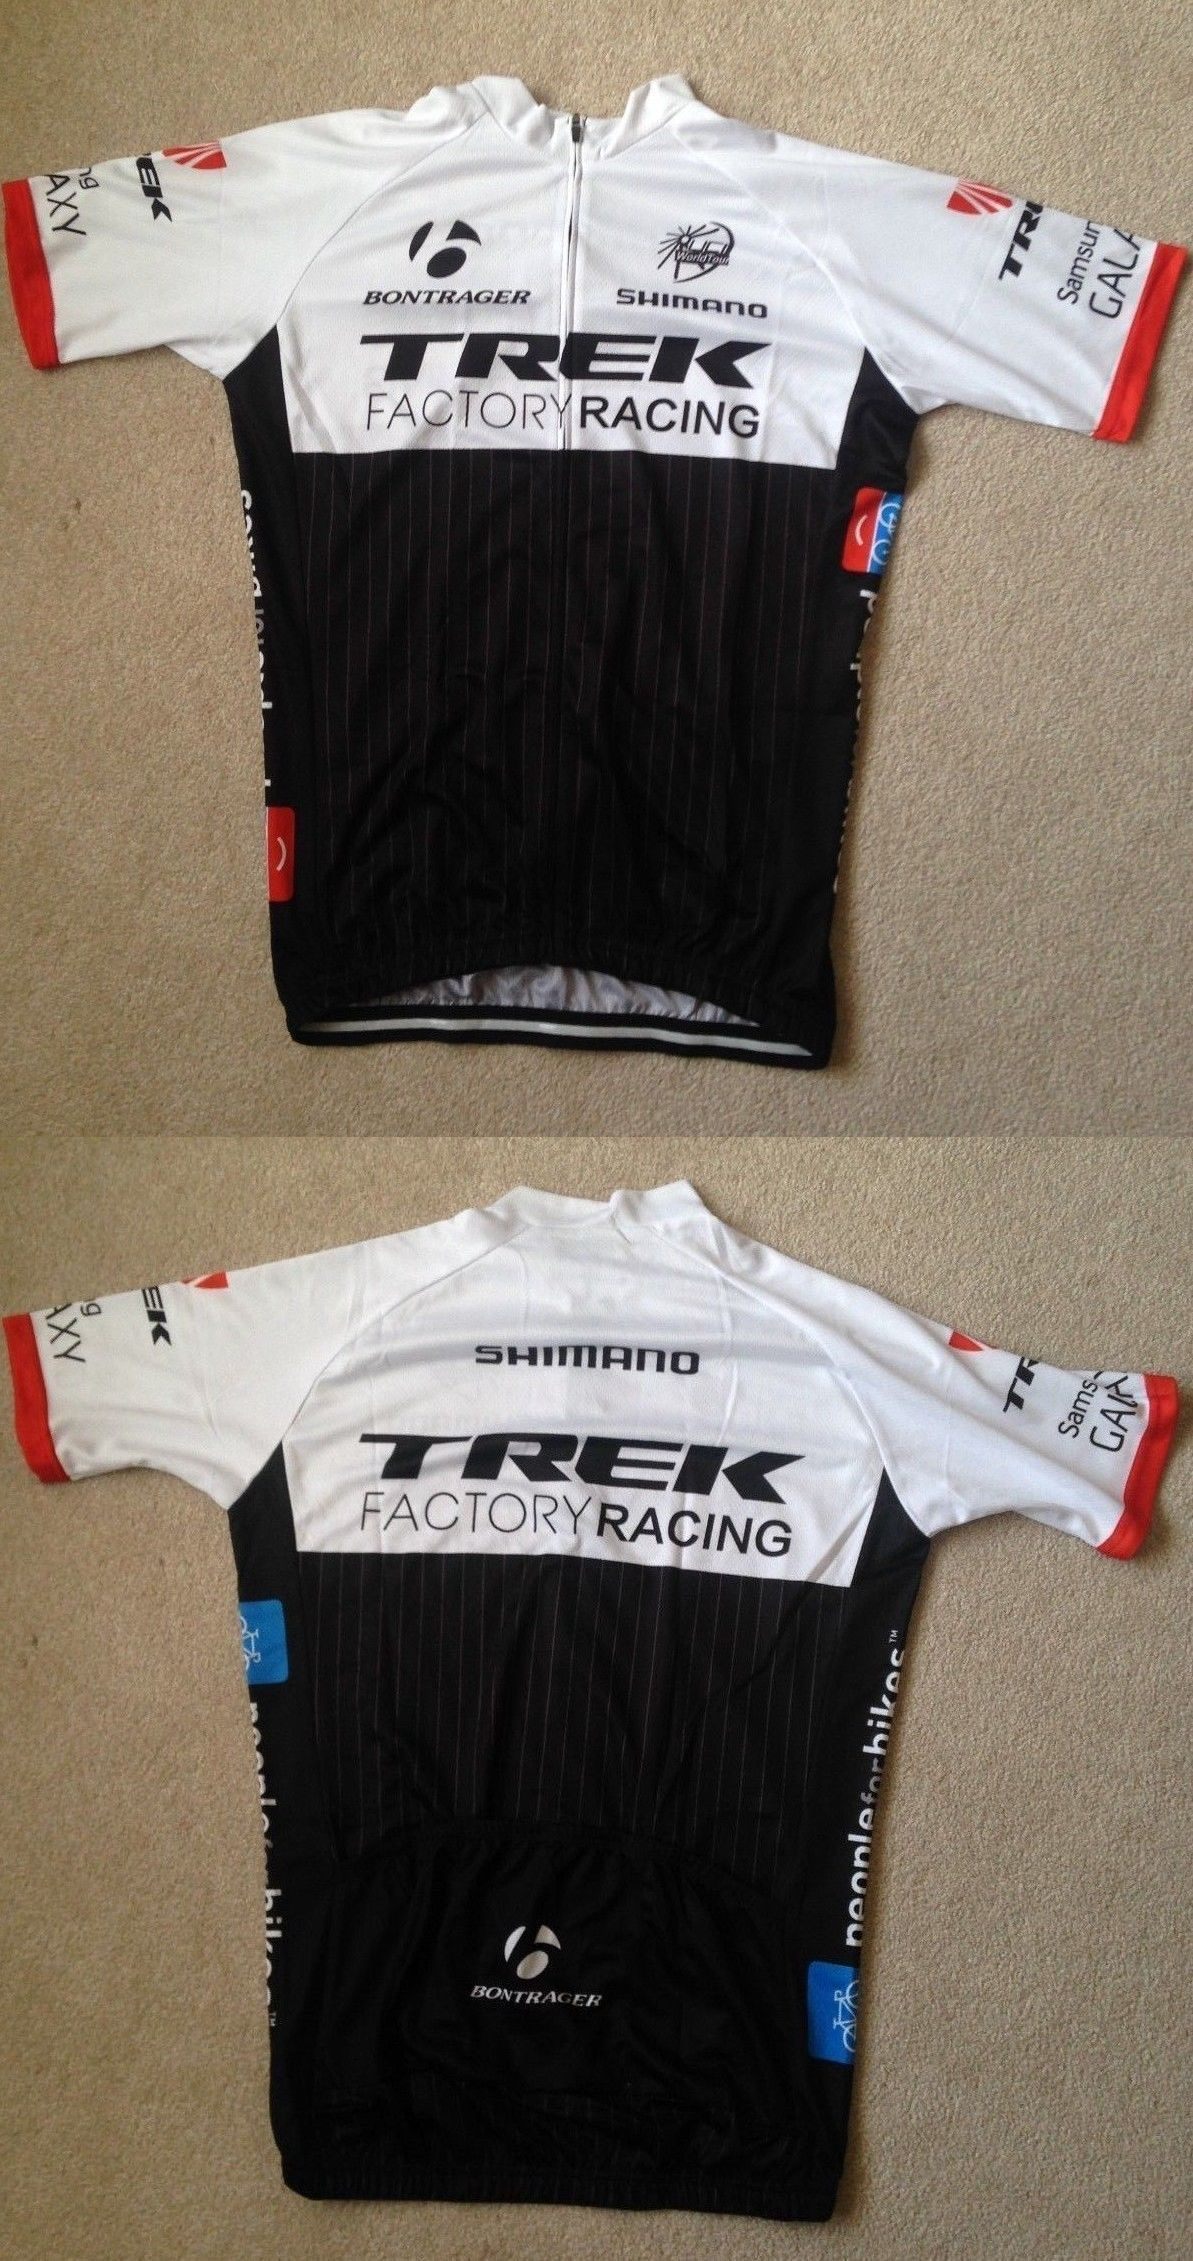 Jerseys 56183  Trek Factory Racing Cycling Jersey Large -  BUY IT NOW ONLY  35a755cfd